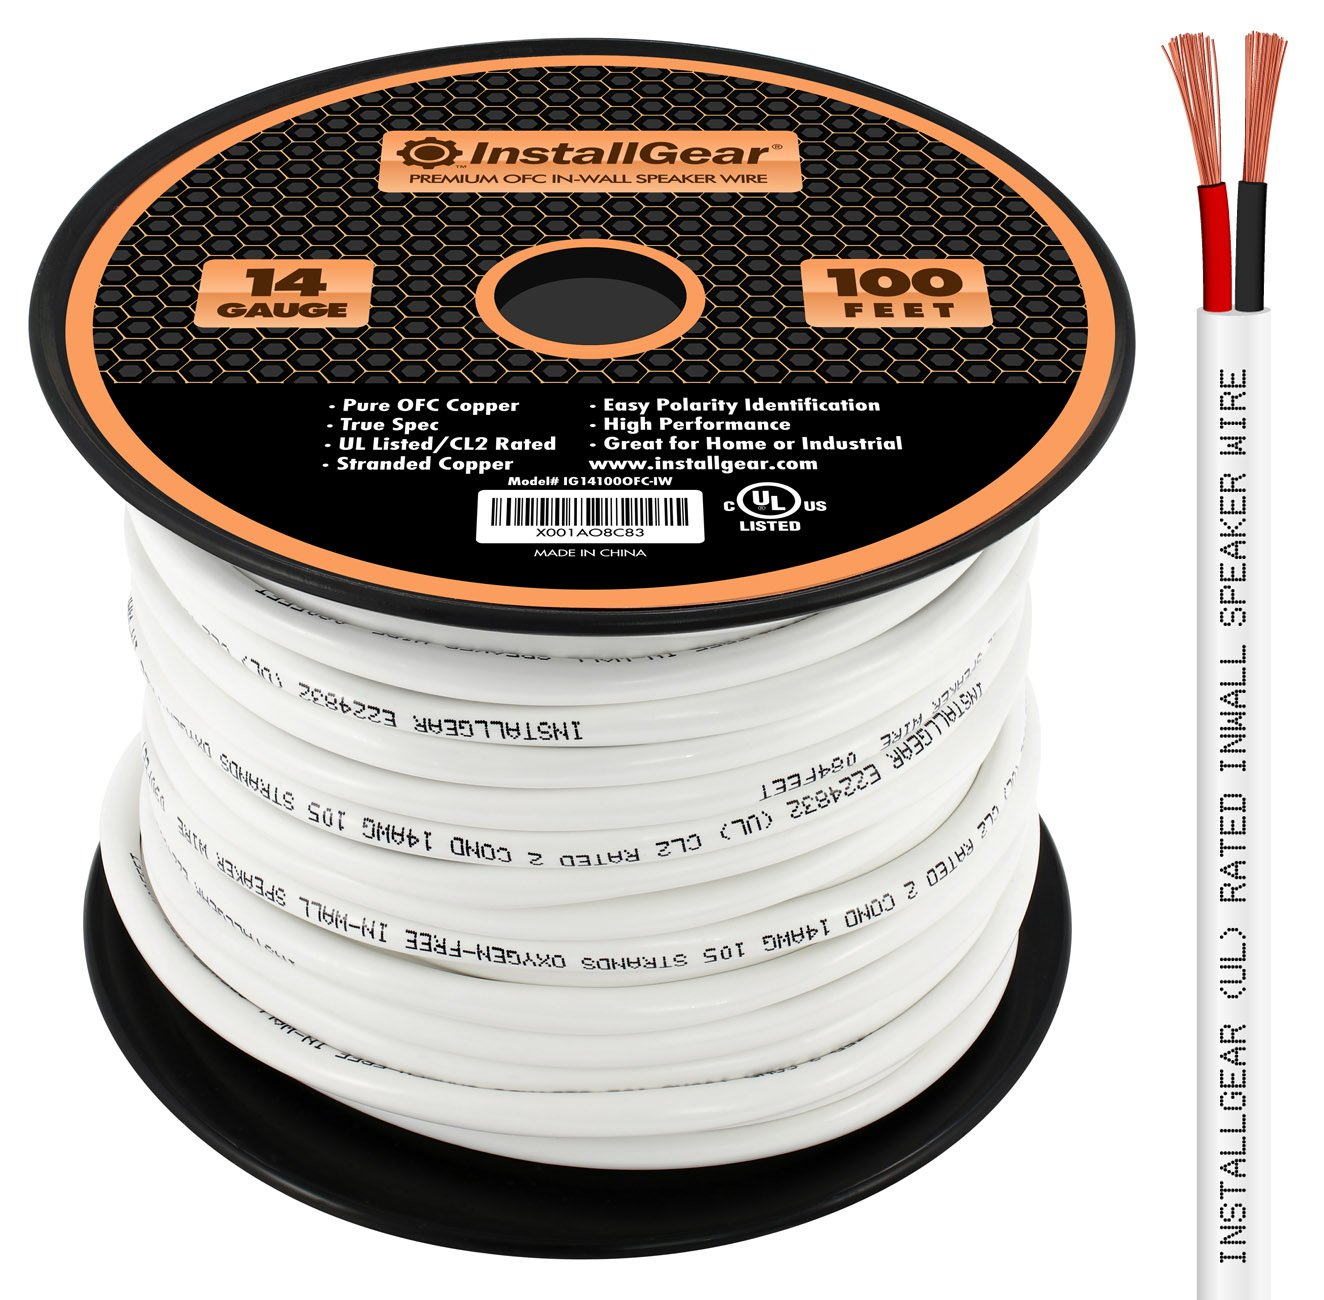 InstallGear 14 Gauge AWG 100ft In Wall Speaker Wire - 99.9% Oxygen-Free Copper - UL Listed/CL2 Rated